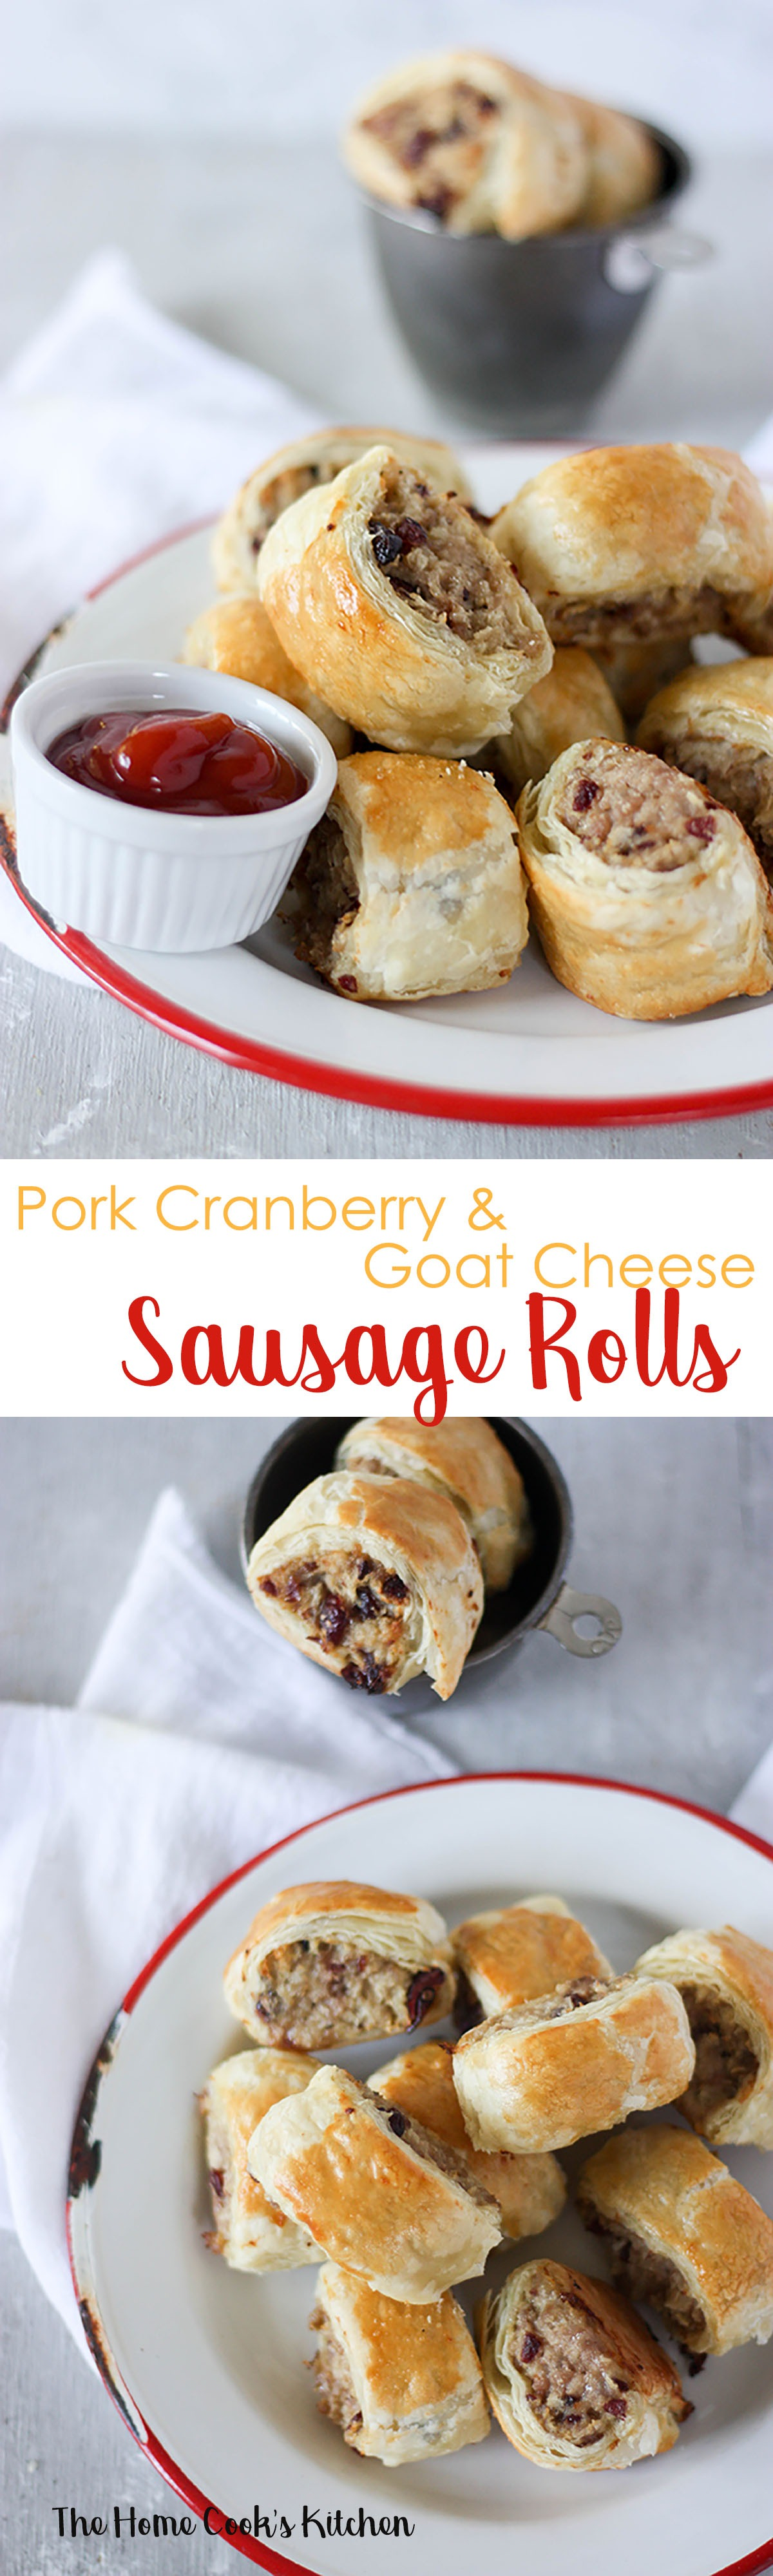 These pork cranberry & goat cheese sausage rolls are great for a quick fuss free party food www.thehomecookskitchen.com